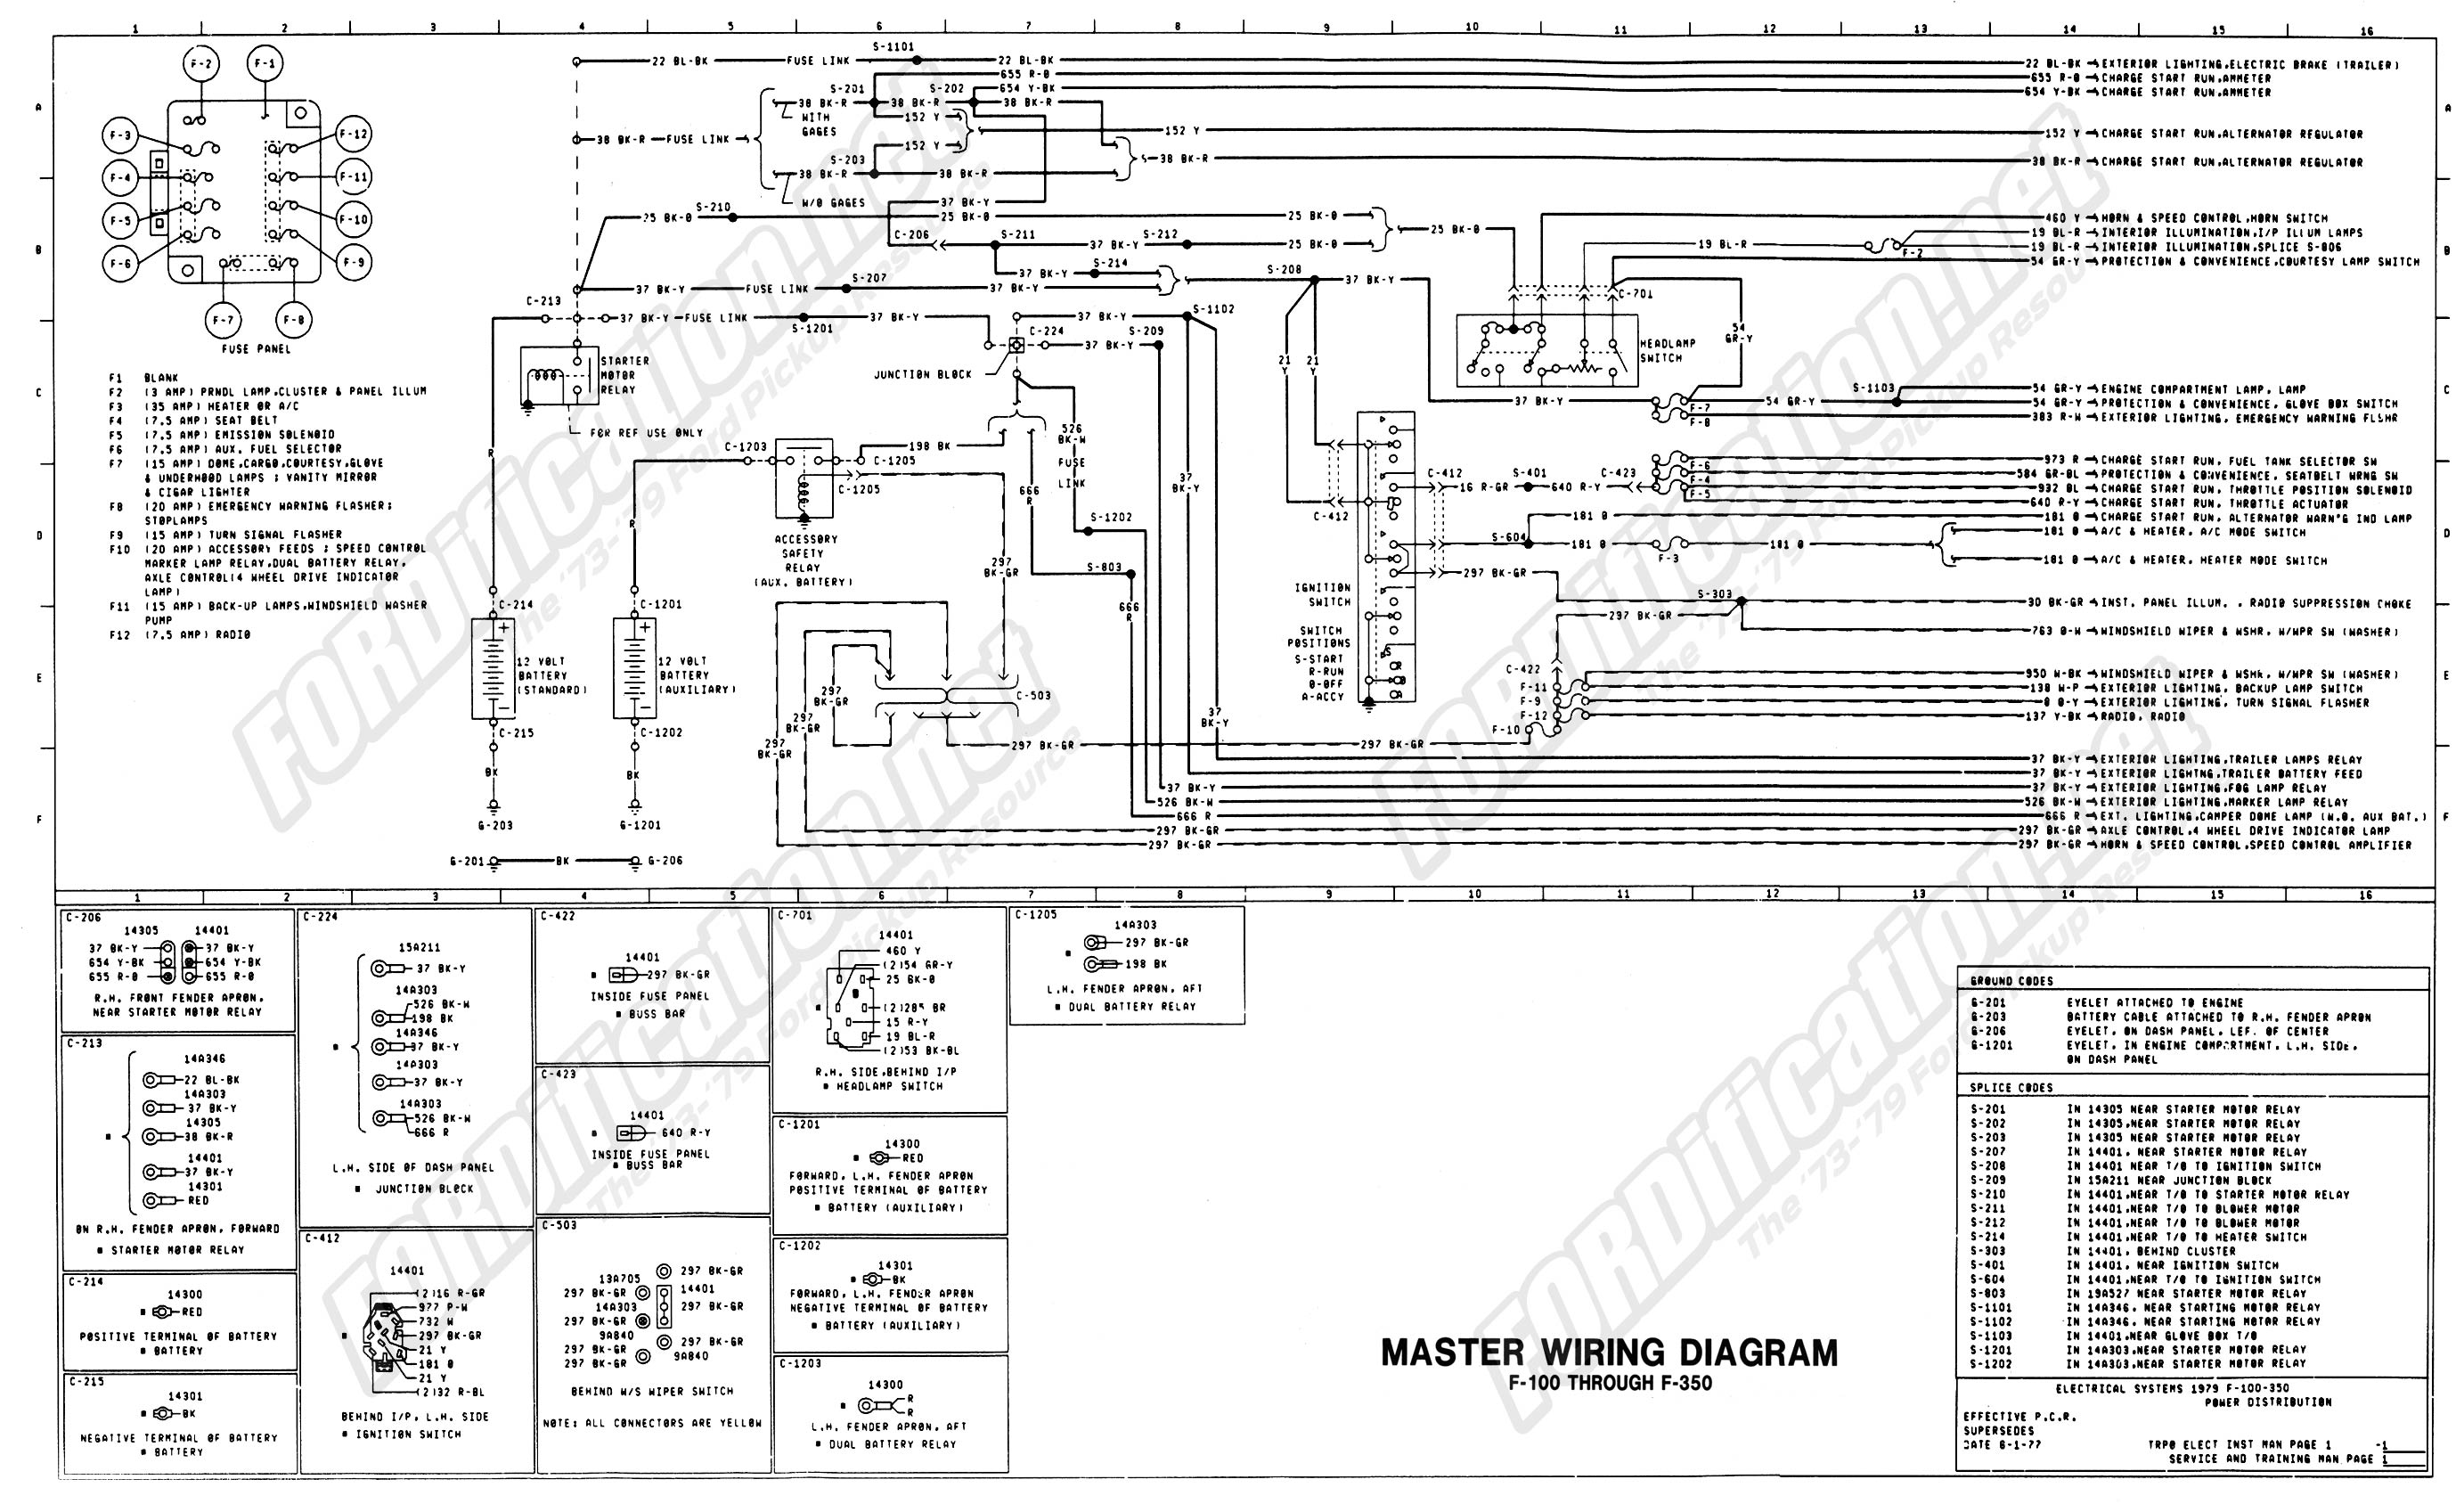 1987 ford e150 wiring diagram 1979 f100 ignition switch wiring diagram positions ford truck fyi this th was started two years